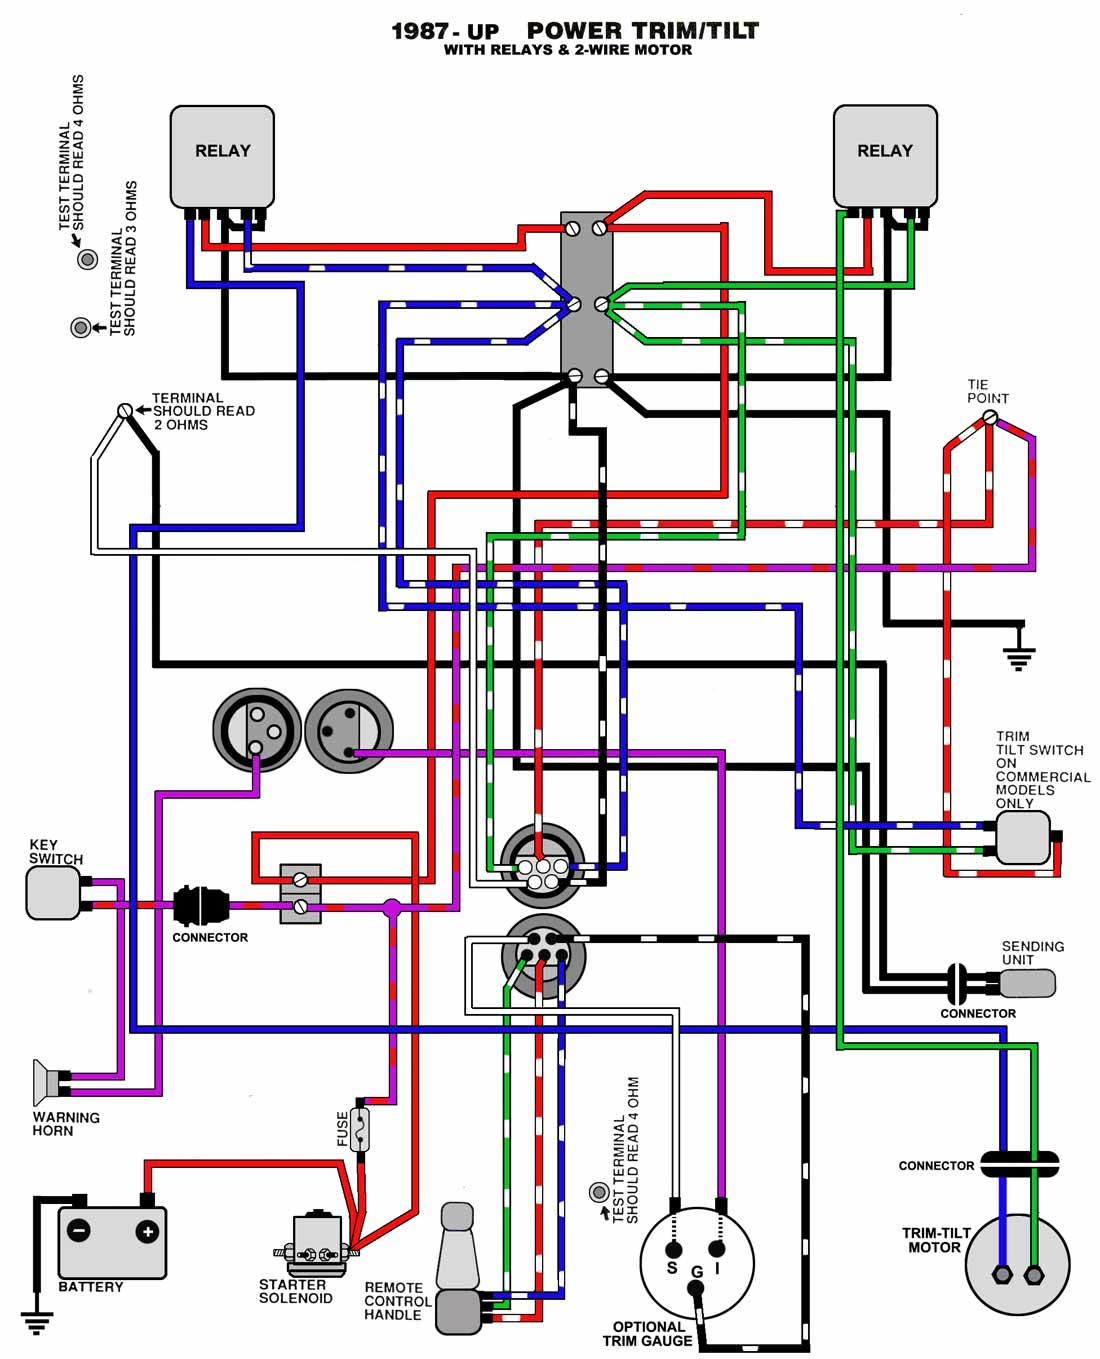 TnT_87_UP mastertech marine evinrude johnson outboard wiring diagrams 35 Evinrude Wiring Diagram at suagrazia.org